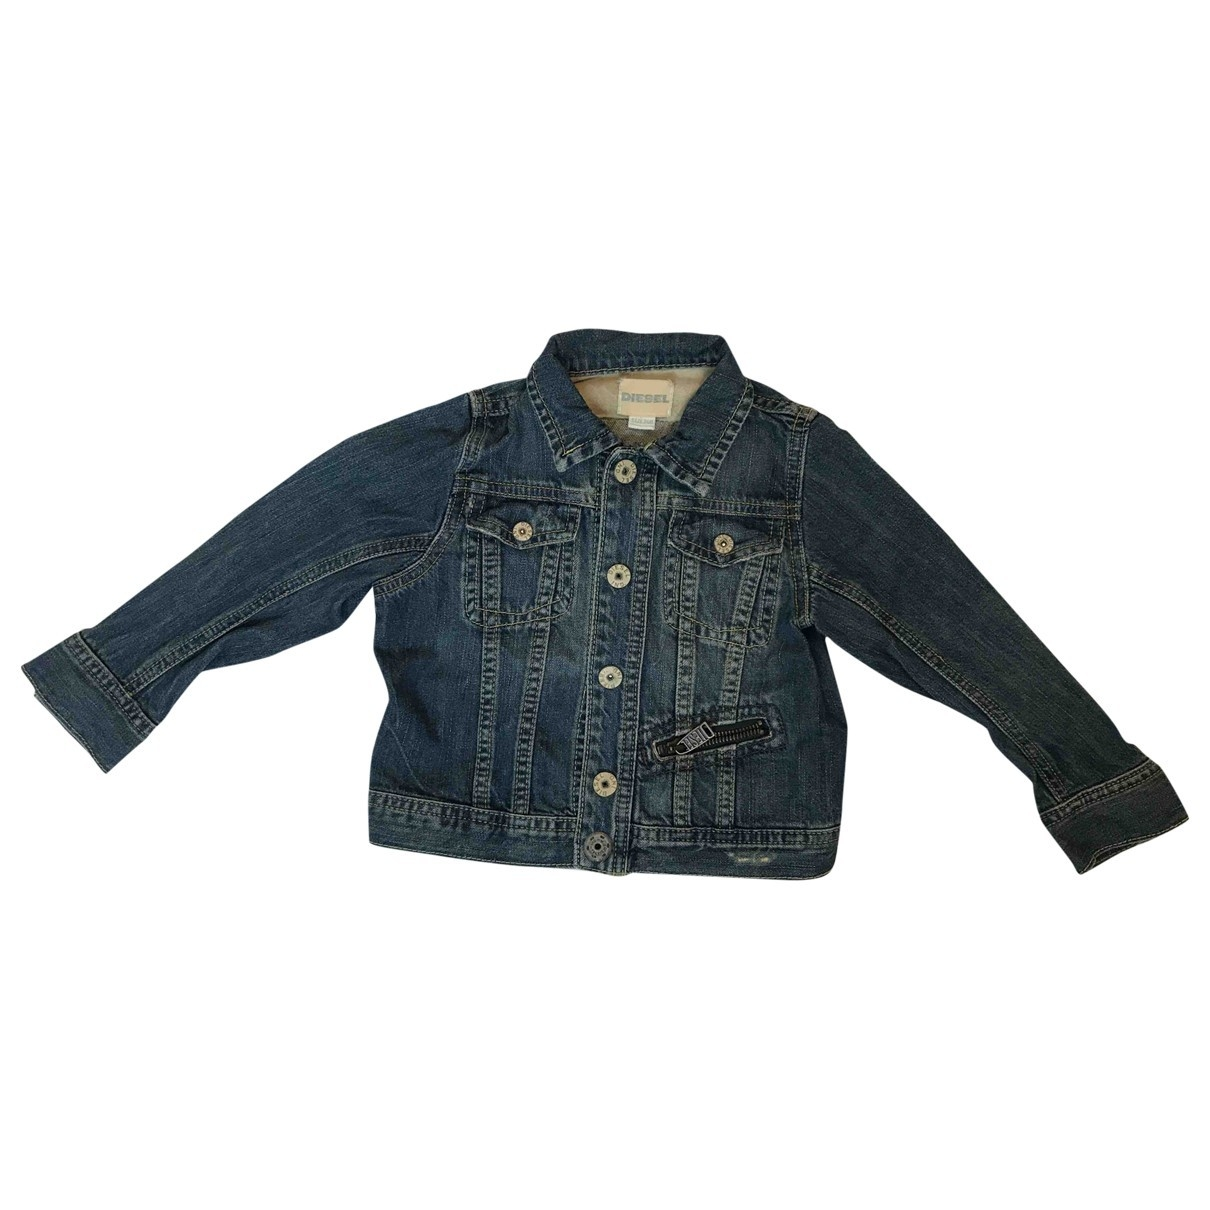 Diesel \N Blue Denim - Jeans jacket & coat for Kids 2 years - up to 86cm FR